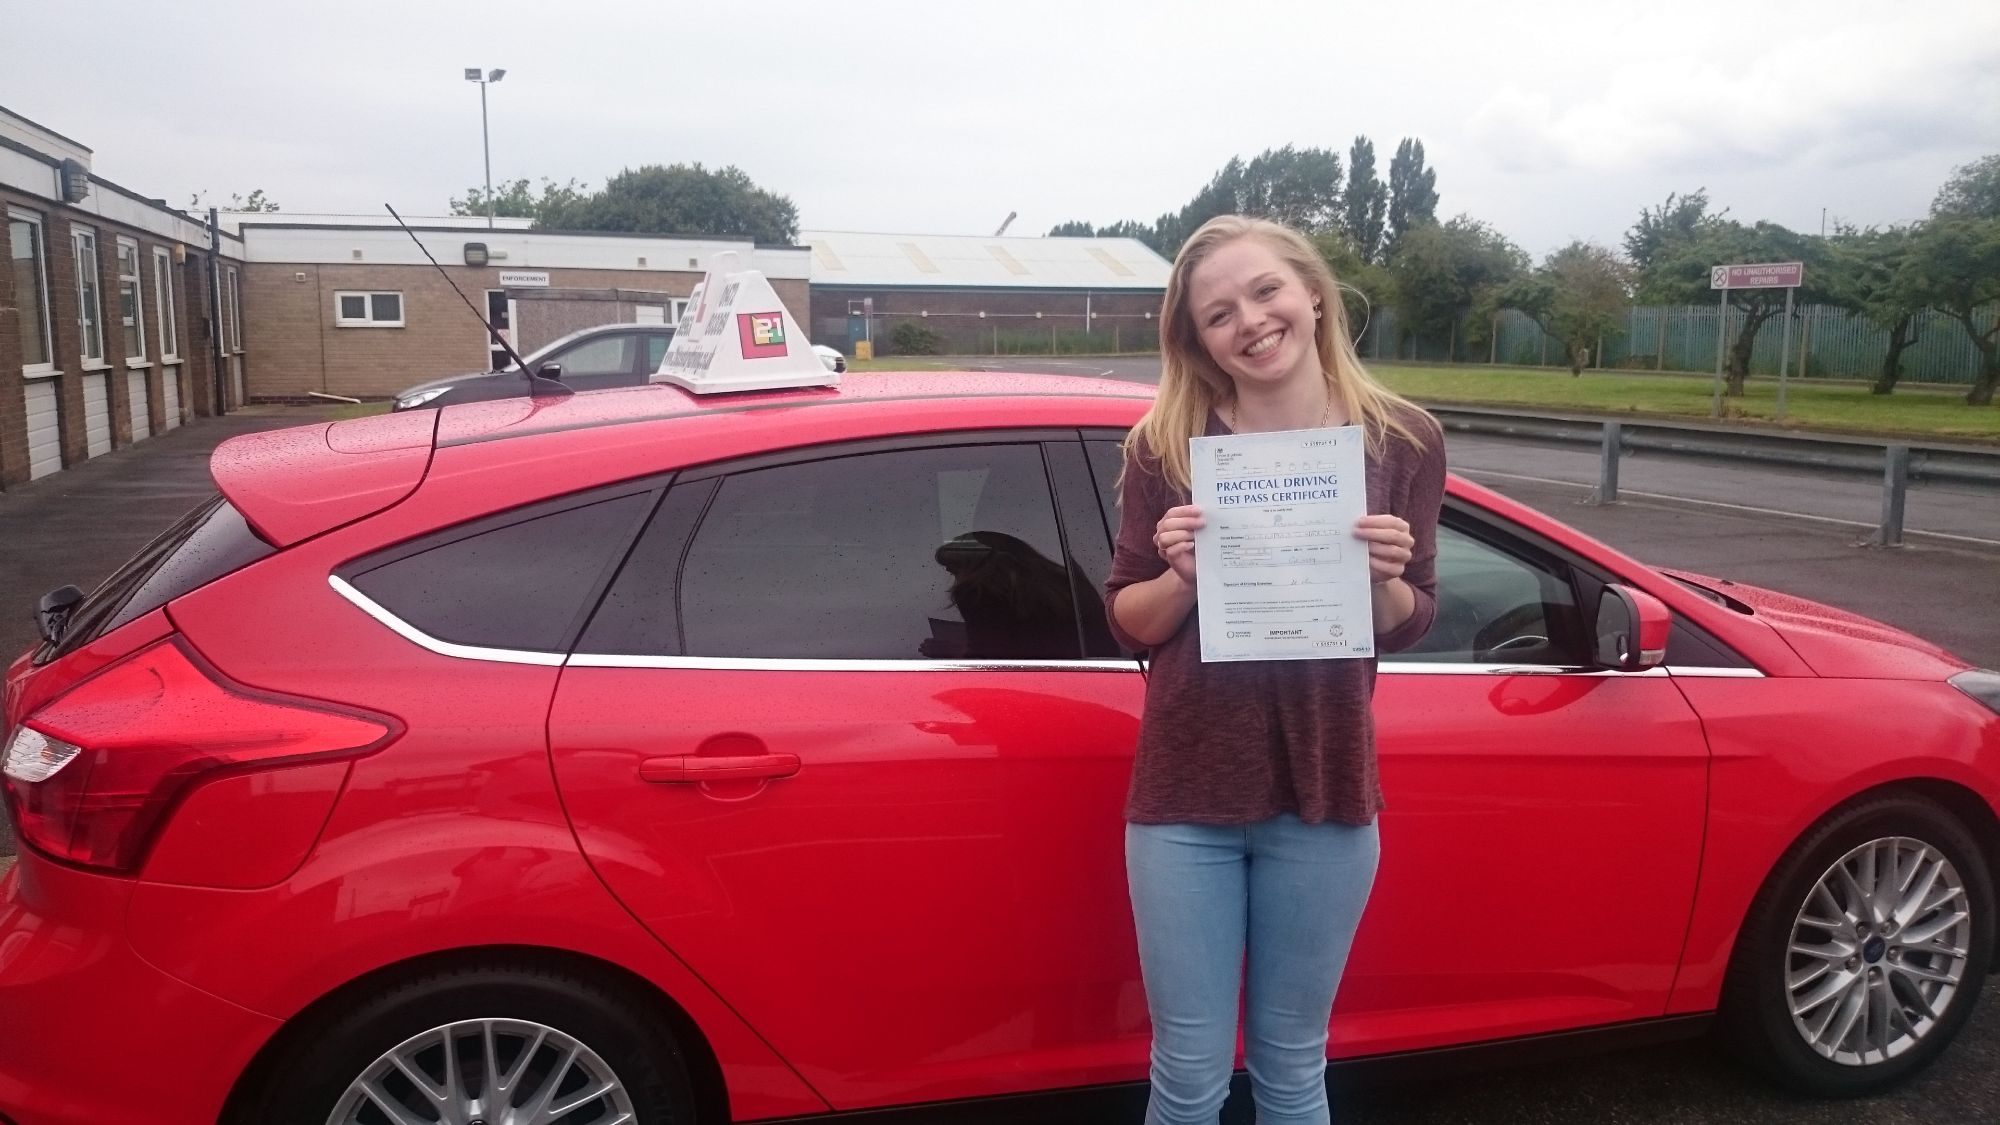 Abi passed her driving test after taking her driving lessons in Grimsby with www.21stcenturydriving.co.uk